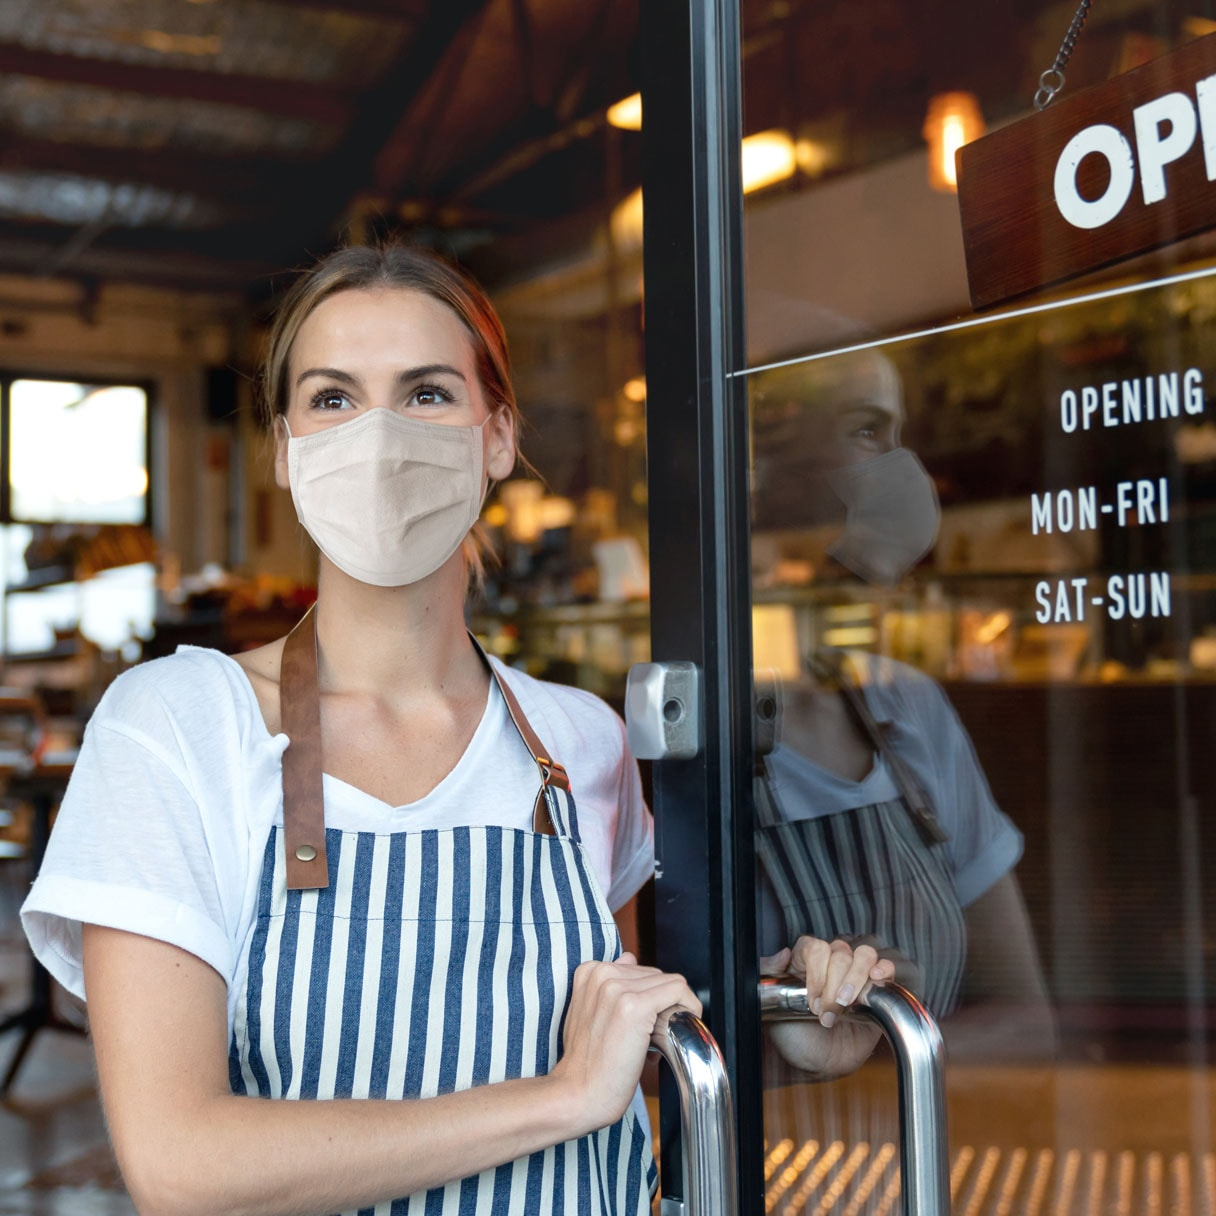 person wearing face mask and apron holding business door open